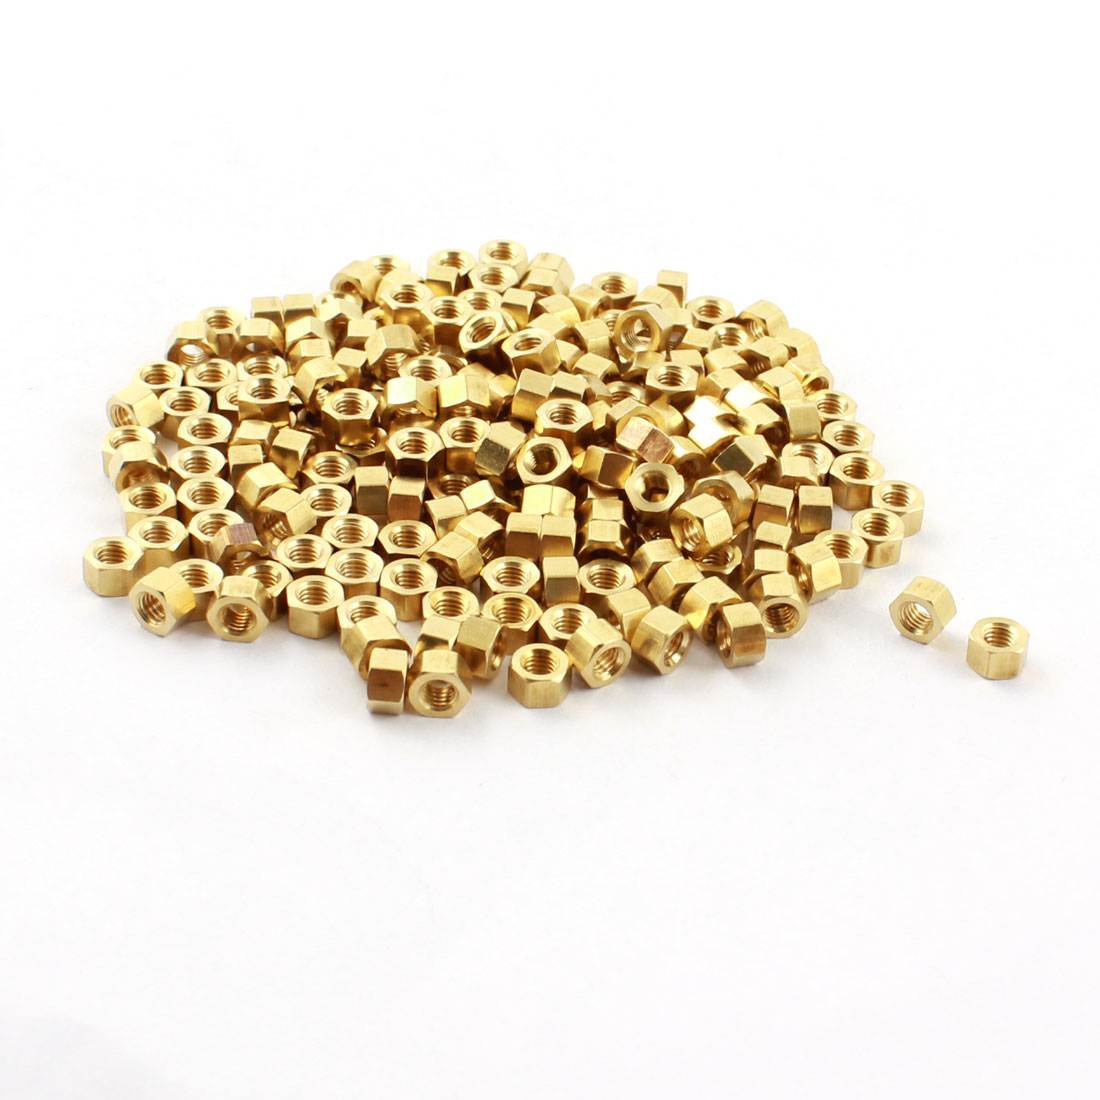 200 Pcs M3 x 3mm M3 Female Thread Gold Tone Brass Pillar PCB Standoff Hexagonal Nut Spacer